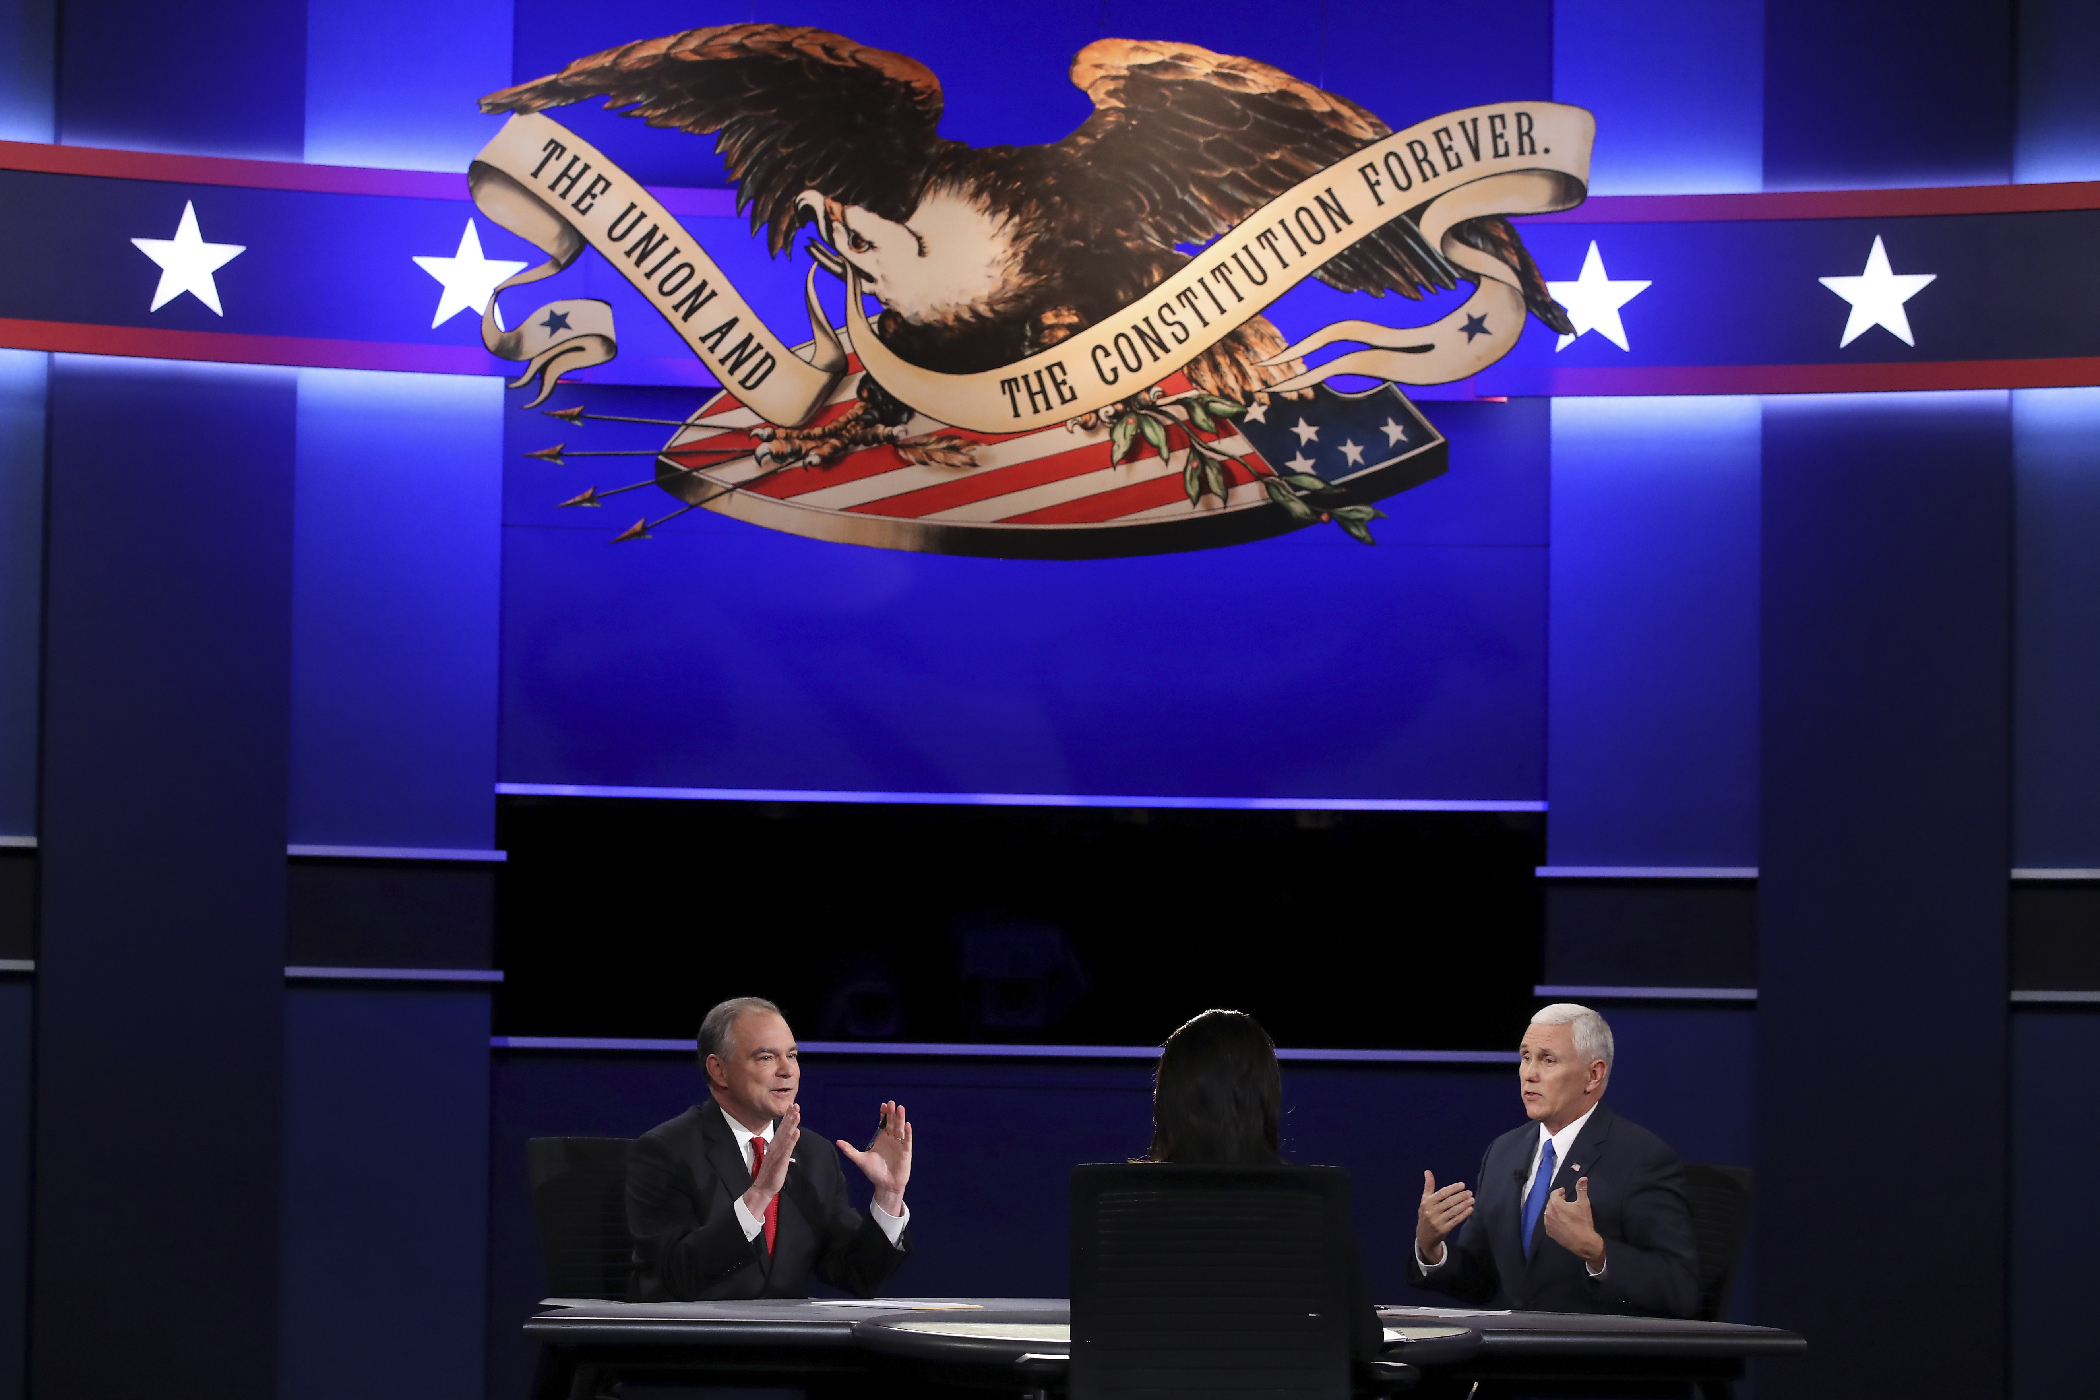 Democratic vice presidential nominee Tim Kaine (L) and Republican vice presidential nominee Mike Pence (R) speak as debate moderator Elaine Quijano (C) listens during the Vice Presidential Debate at Longwood University on October 4, 2016 in Farmville, Virginia.  This is the second of four debates during the presidential election season and the only debate between the vice presidential candidates.